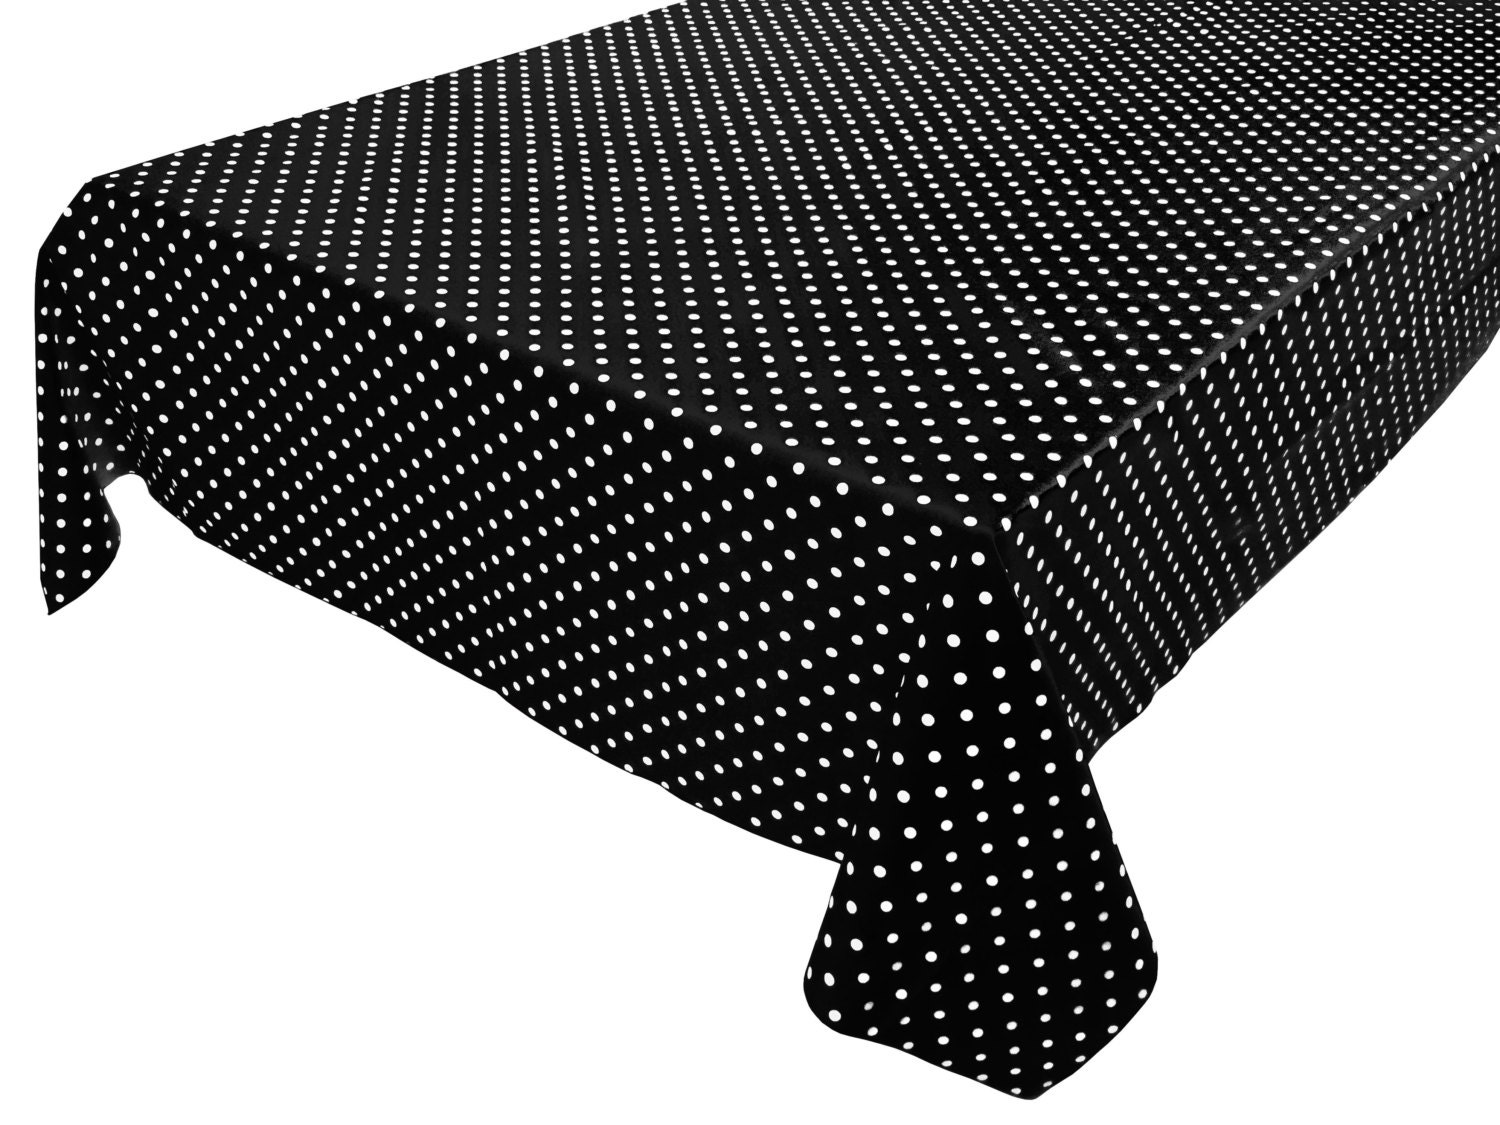 Cotton table cloth polka dots spots small dots white on for Black polka dot tablecloth